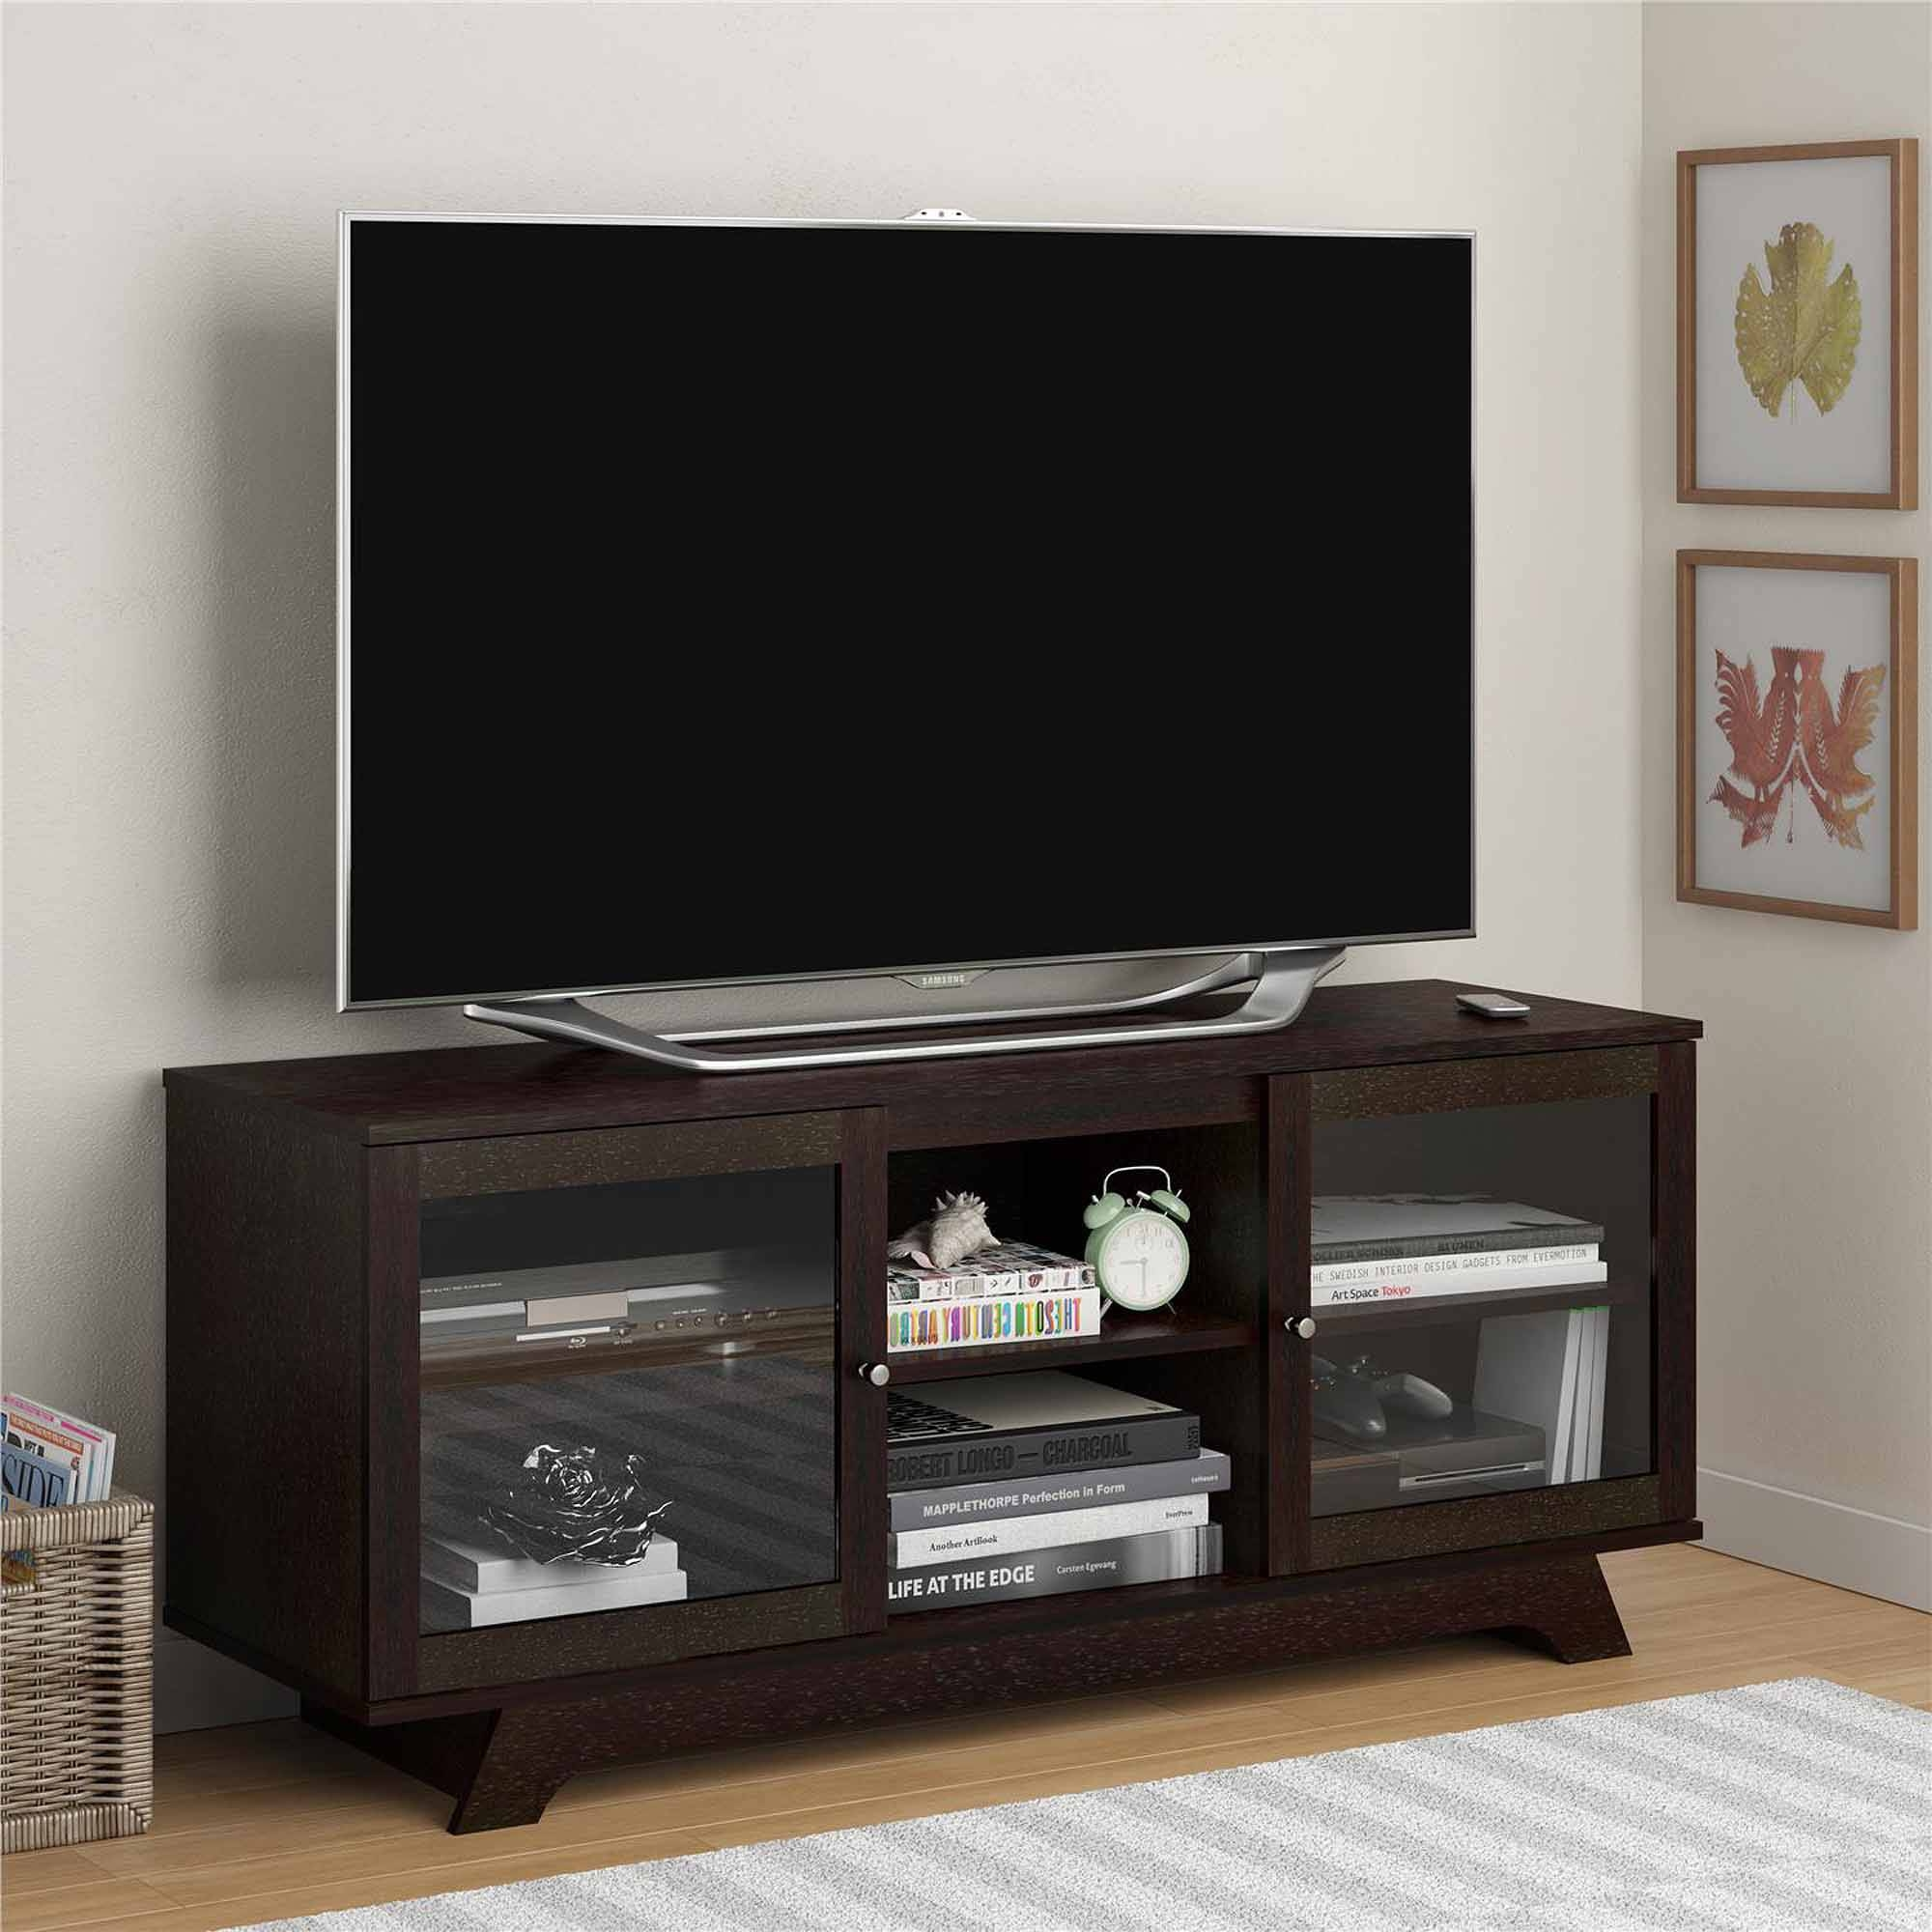 Tv Stands & Entertainment Centers – Walmart Intended For Wooden Tv Stands For 55 Inch Flat Screen (View 4 of 15)